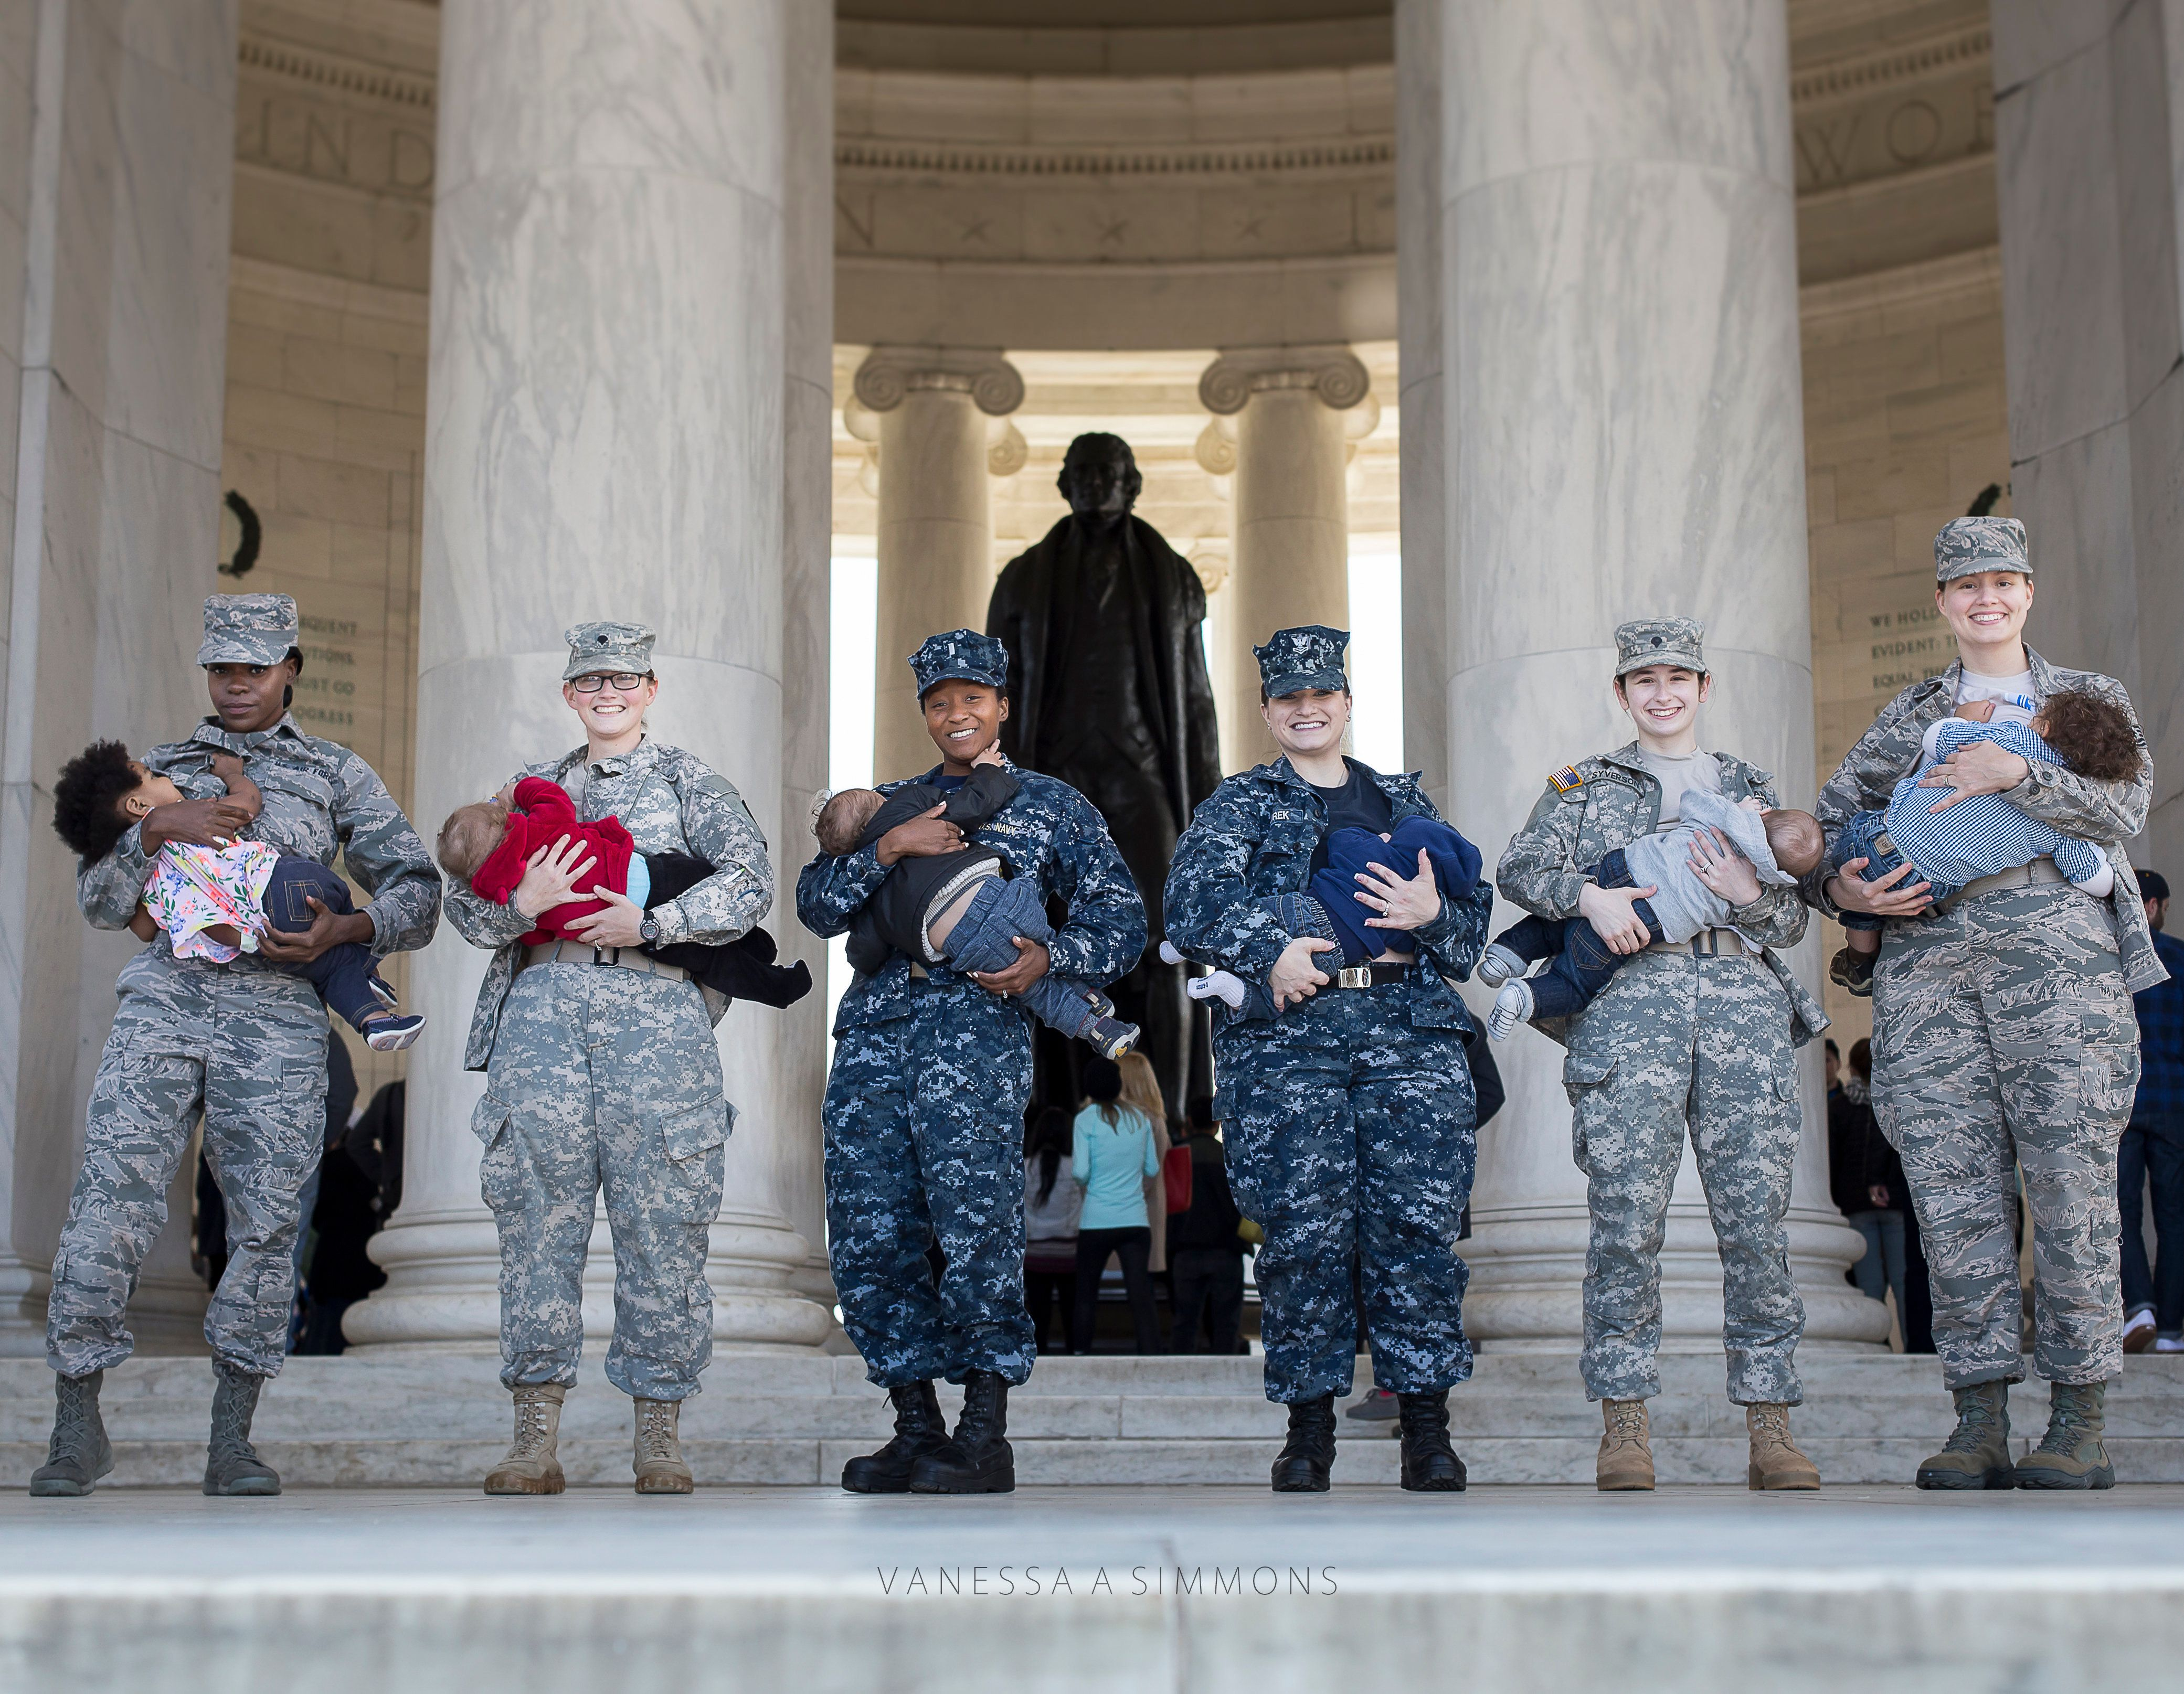 """Moms in the militarynursed their babies at the Jefferson Memorial as part of the """"Normalize Breastfeeding"""" photo projec"""